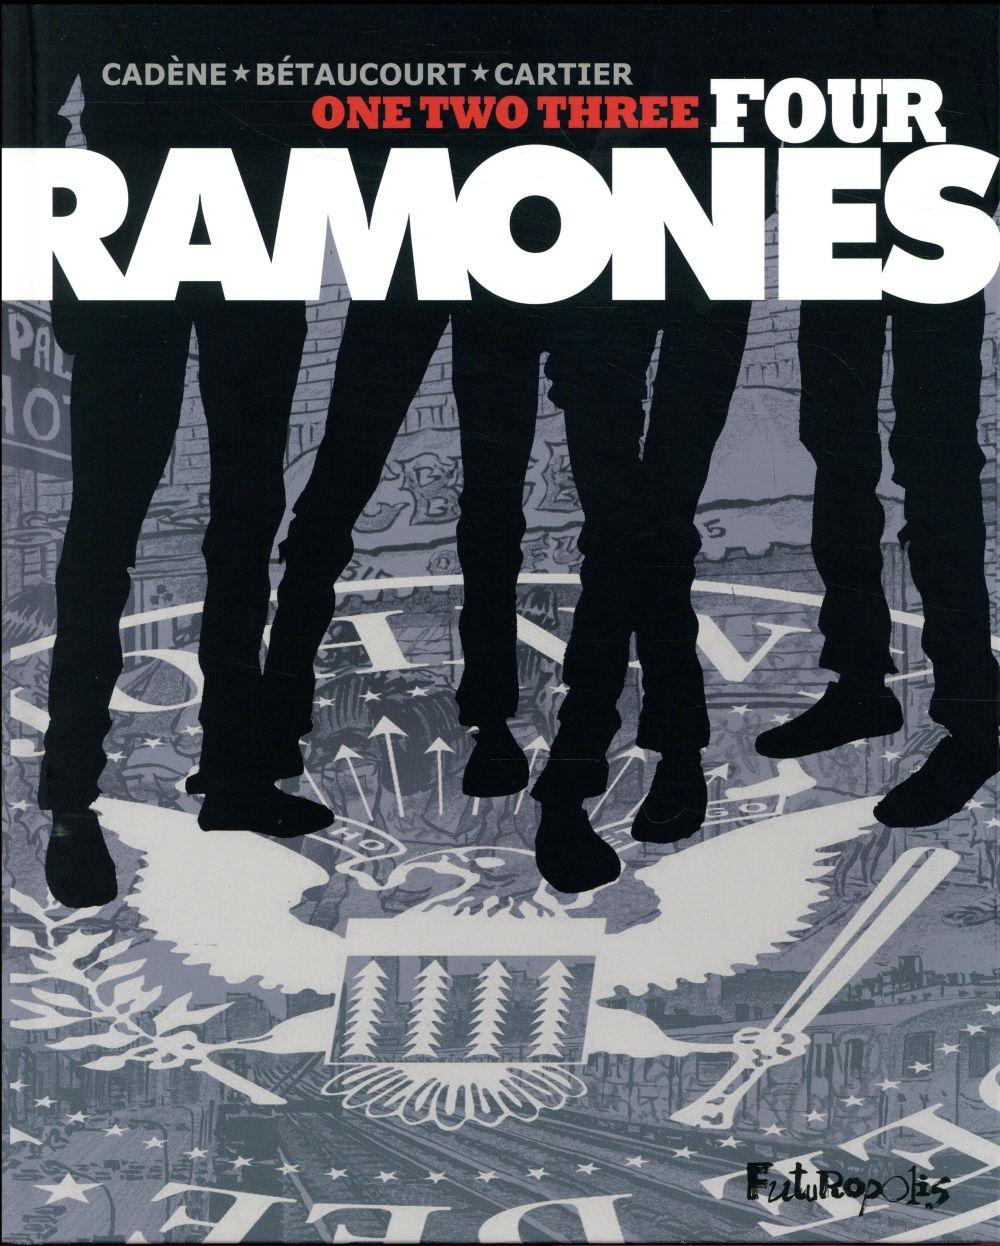 One, two, three, four Ramones  - Xavier Betaucourt  - Eric Cartier  - Bruno Cadene